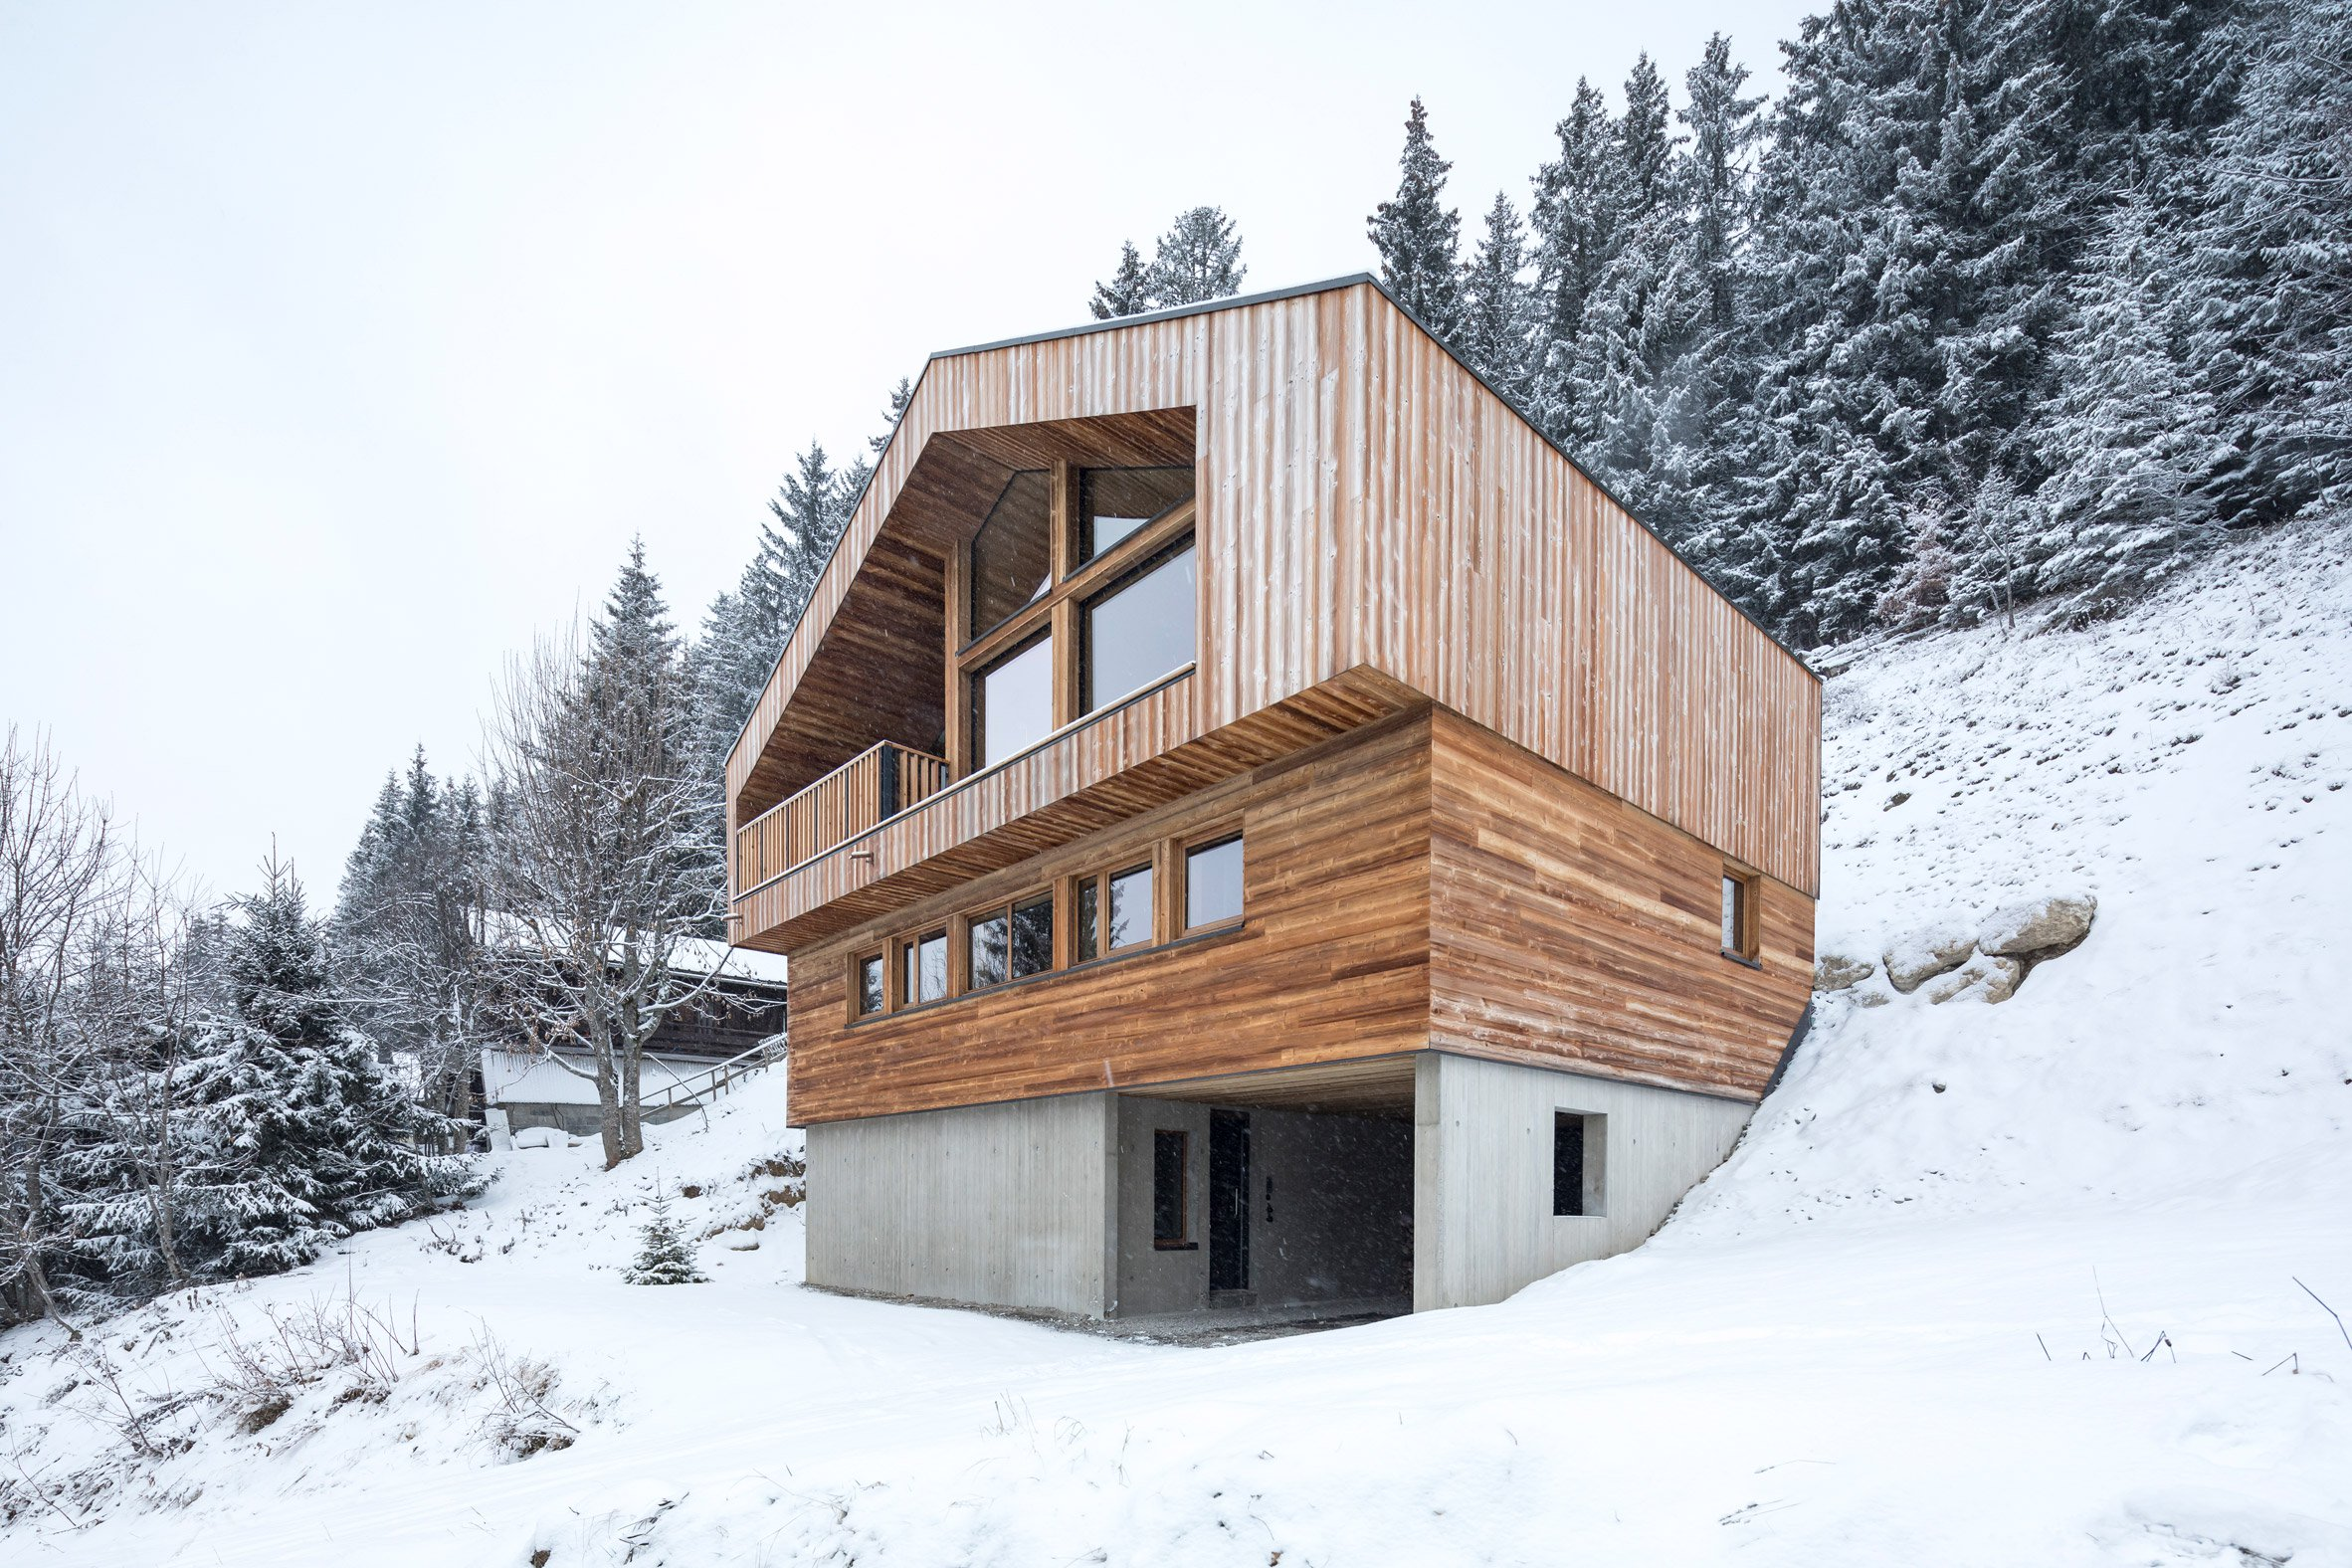 Studio Razavi reinterprets traditional chalet architecture with Mountain House in the Alps